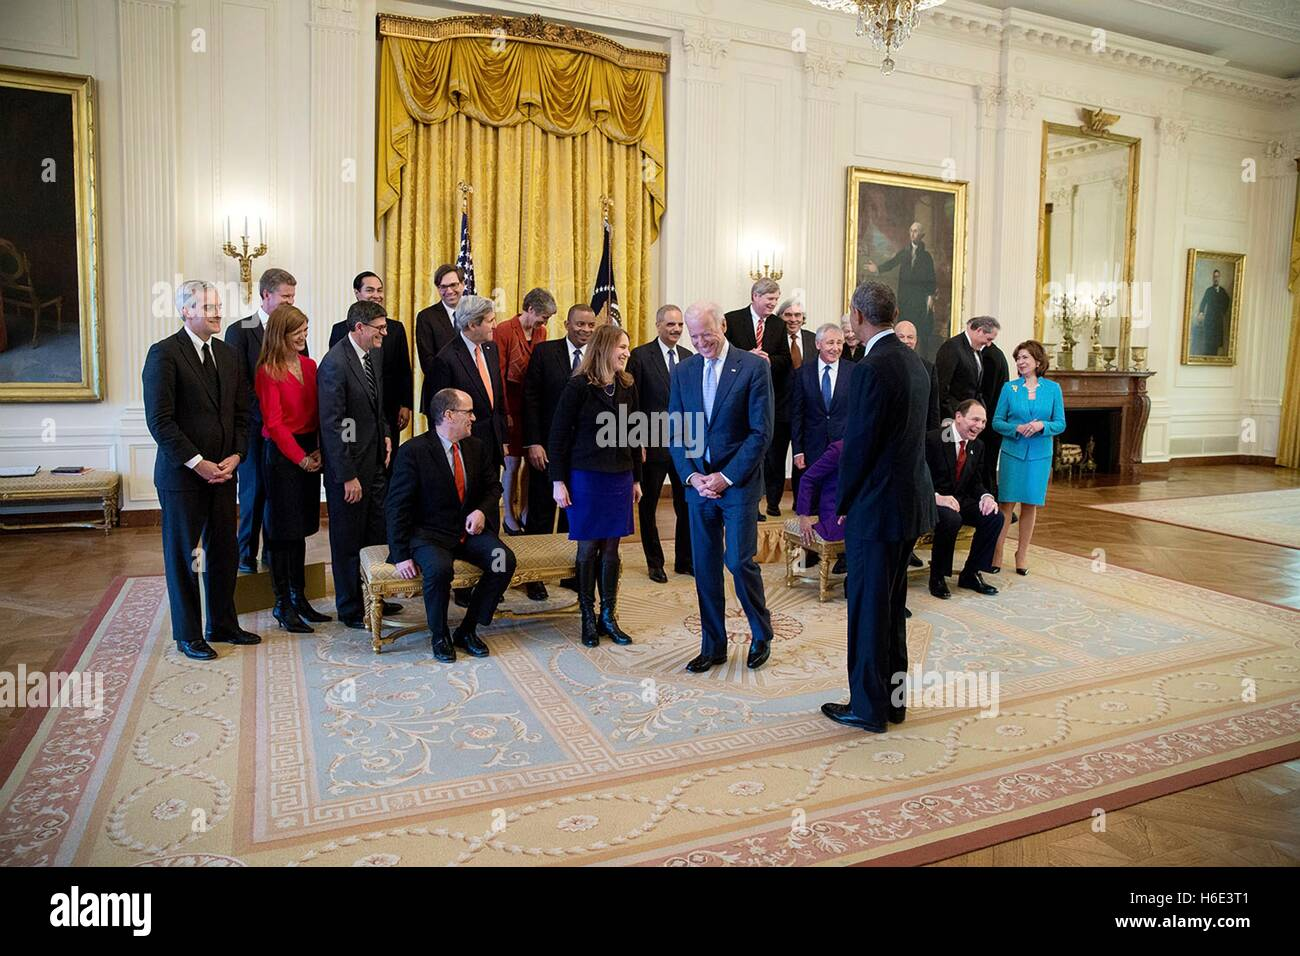 U.S. President Barack Obama and Vice President Joe Biden join the Cabinet for a group photo in the White House East - Stock Image